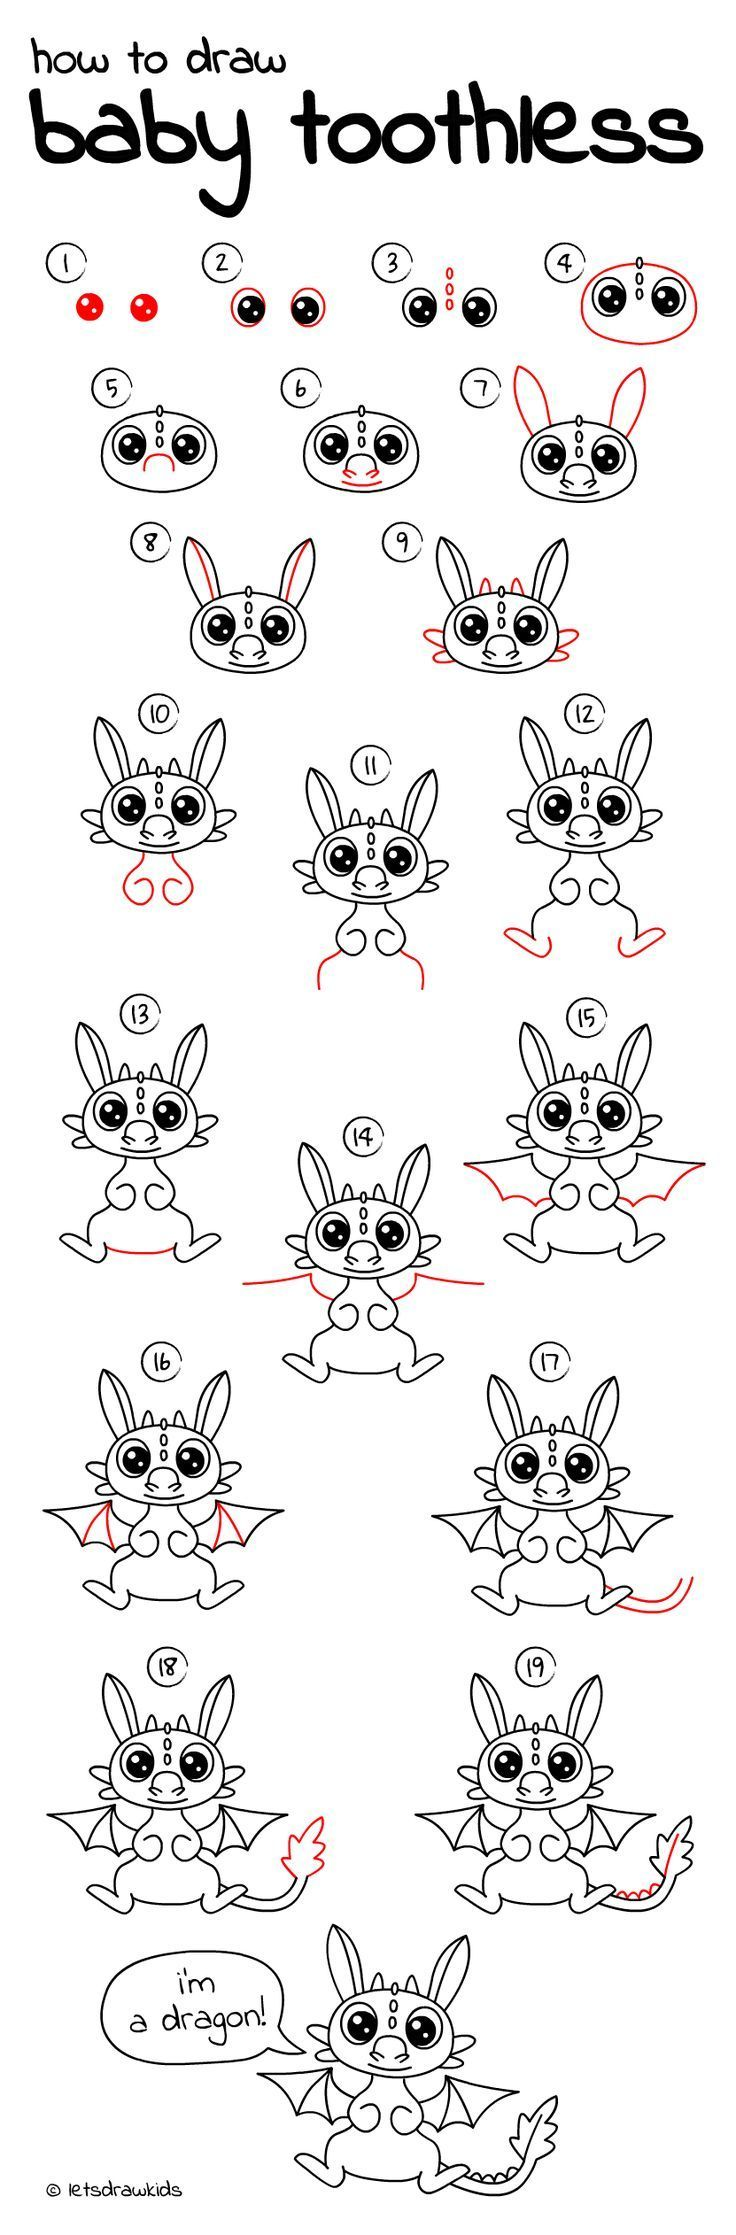 Attractive How To Draw Baby Toothless. Easy Drawing, Step By Step, Perfect For Kids!  Letu0027s Draw Kids. Http://letsdrawkids.com/